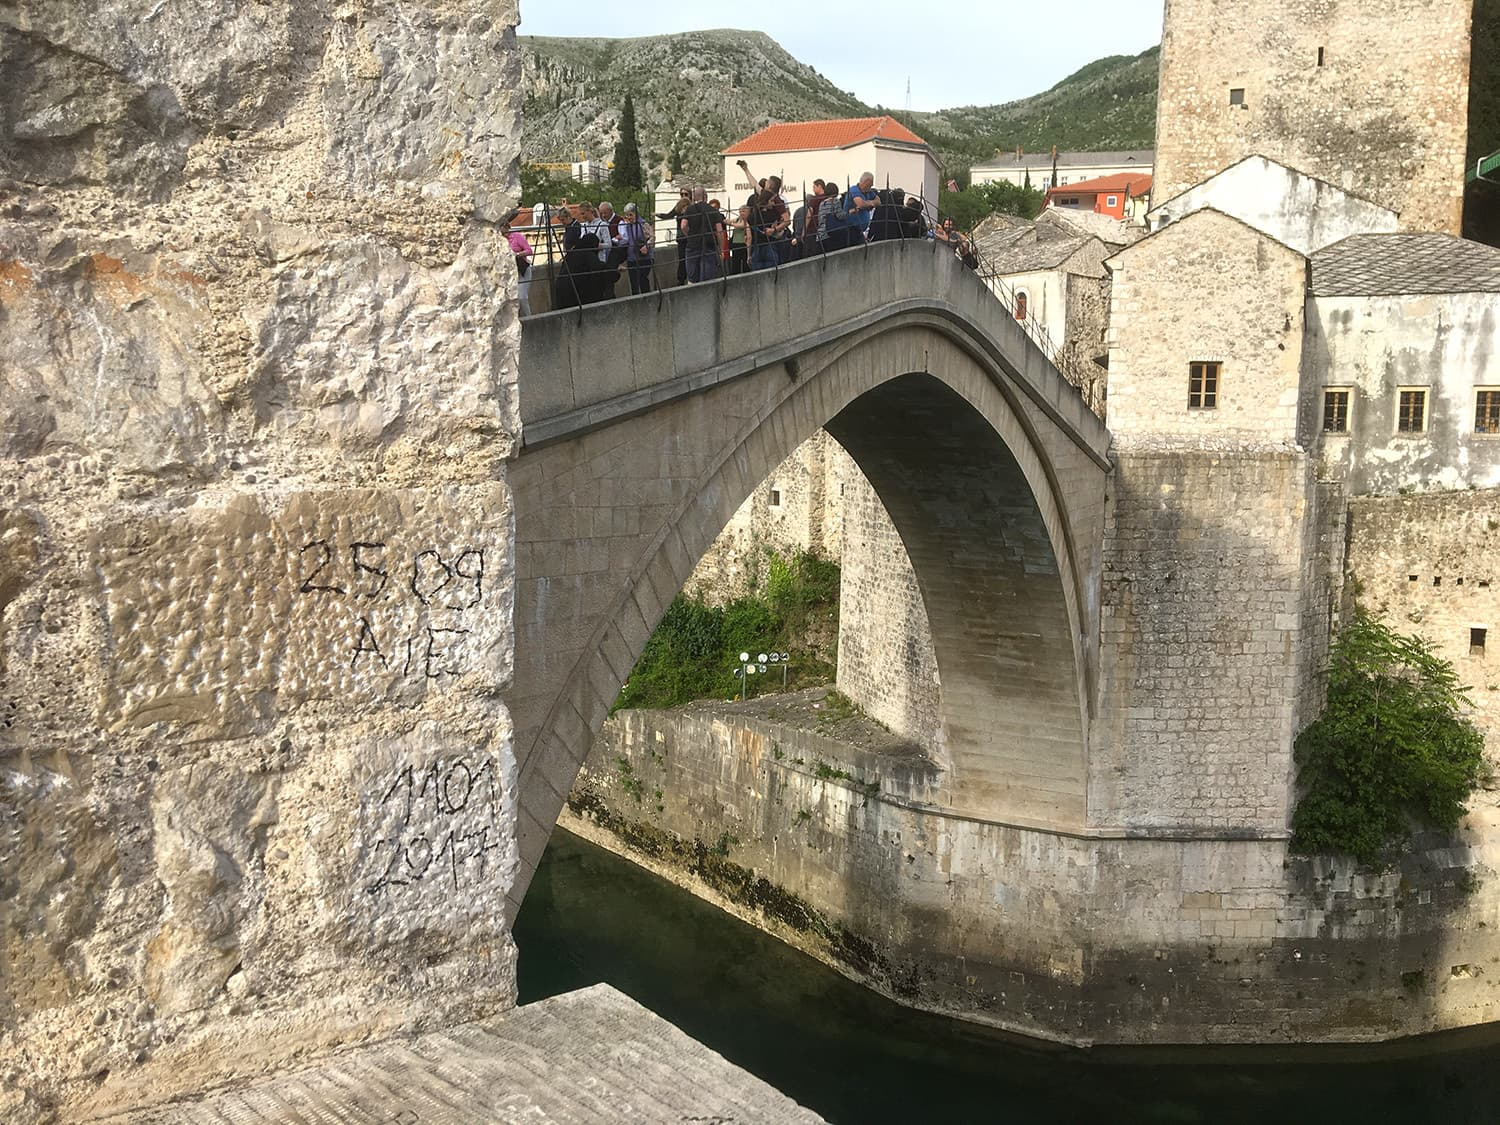 The crowd that gathered on the Stari Most bridge.